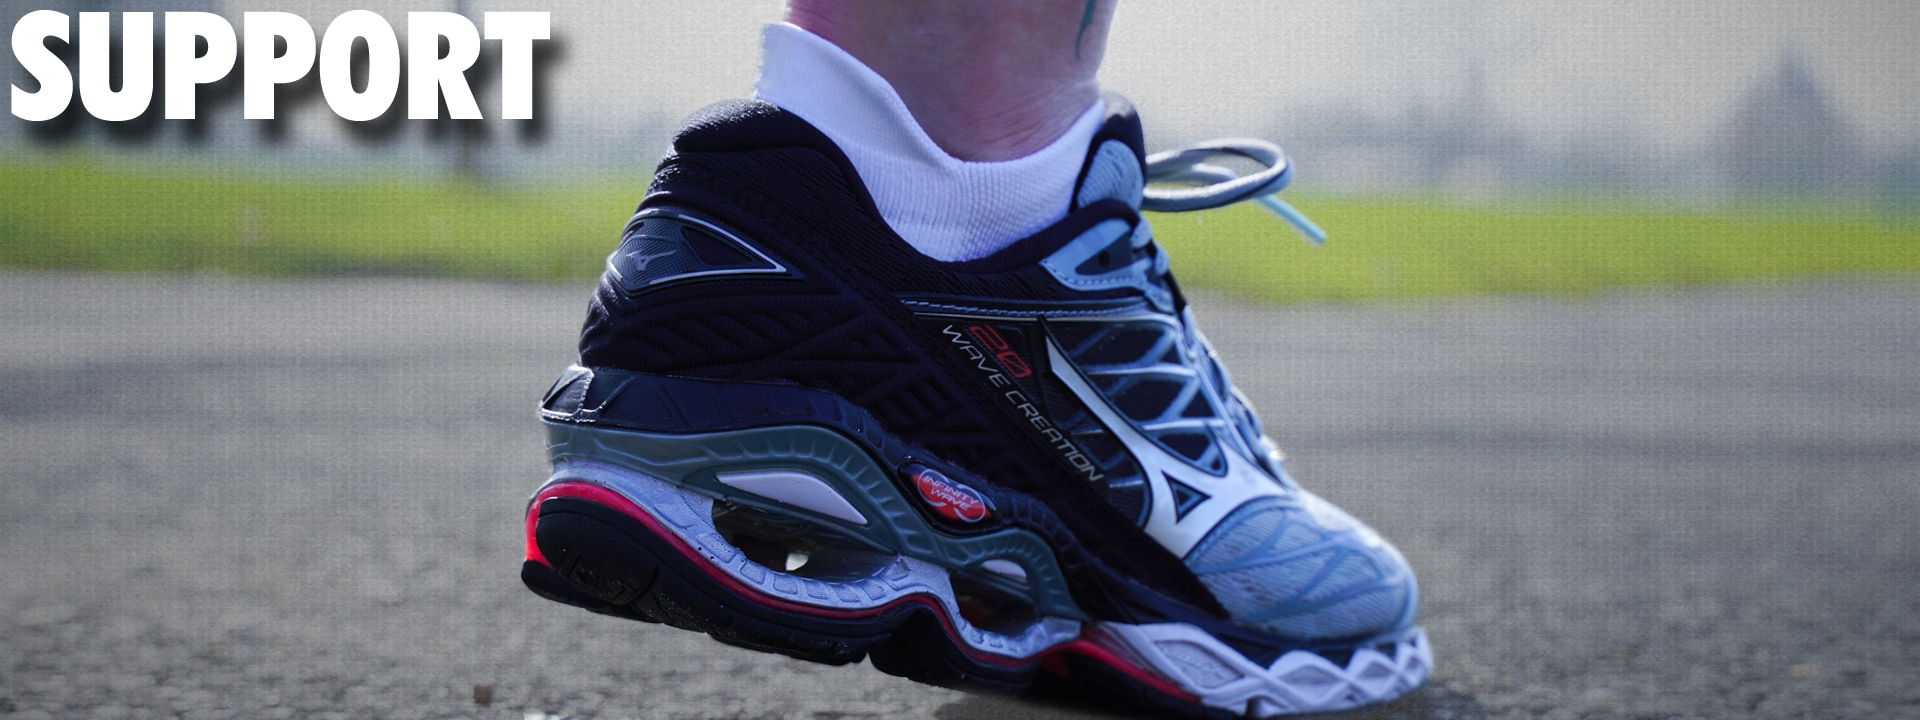 Mizuno Wave Creation 20 Support